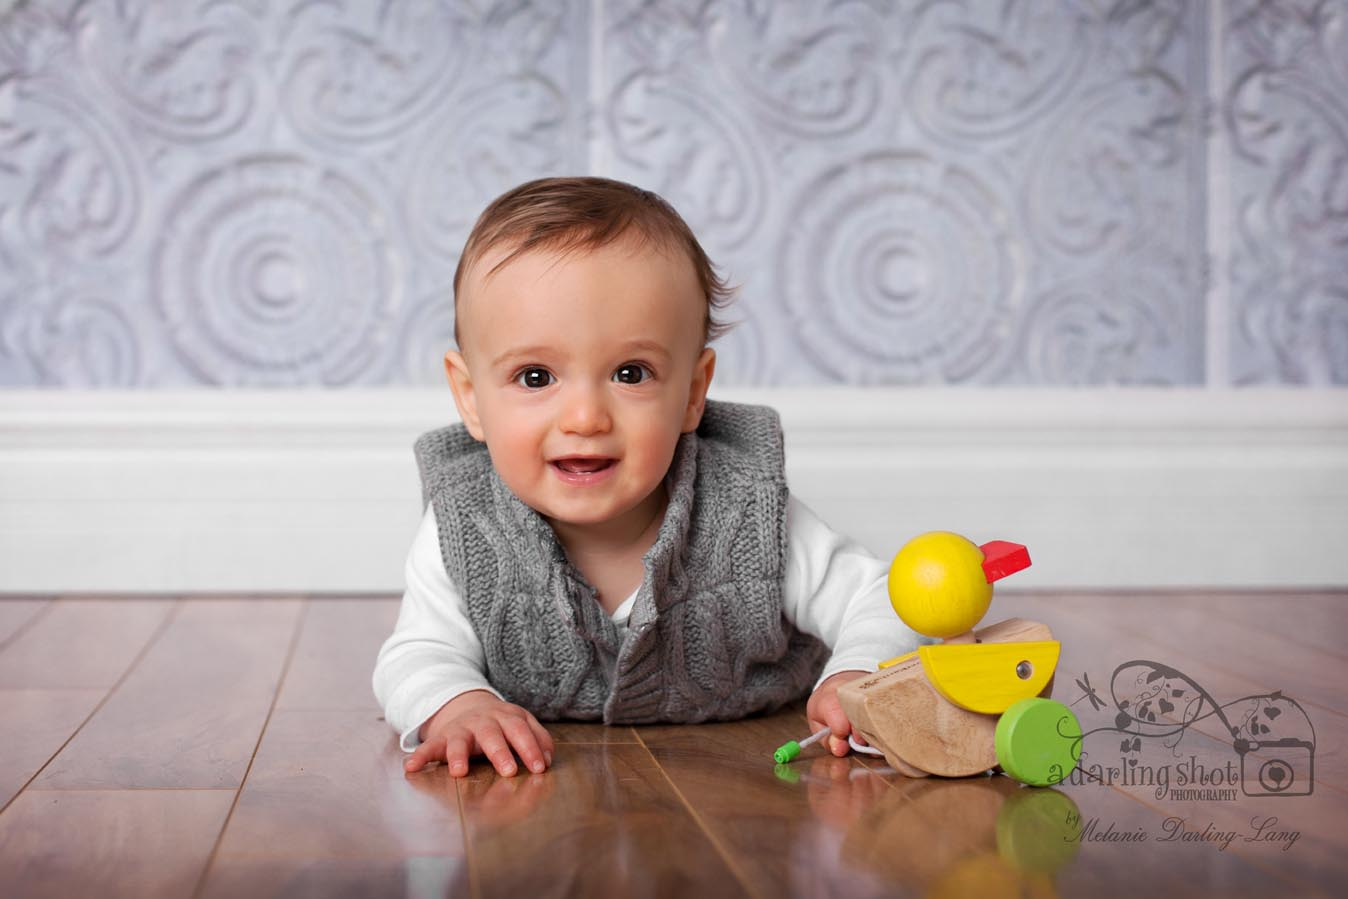 Baby photographer in mississauga cutest 9 month old boy a darling shot photography by melanie darling lang newborn and childrens portraits in